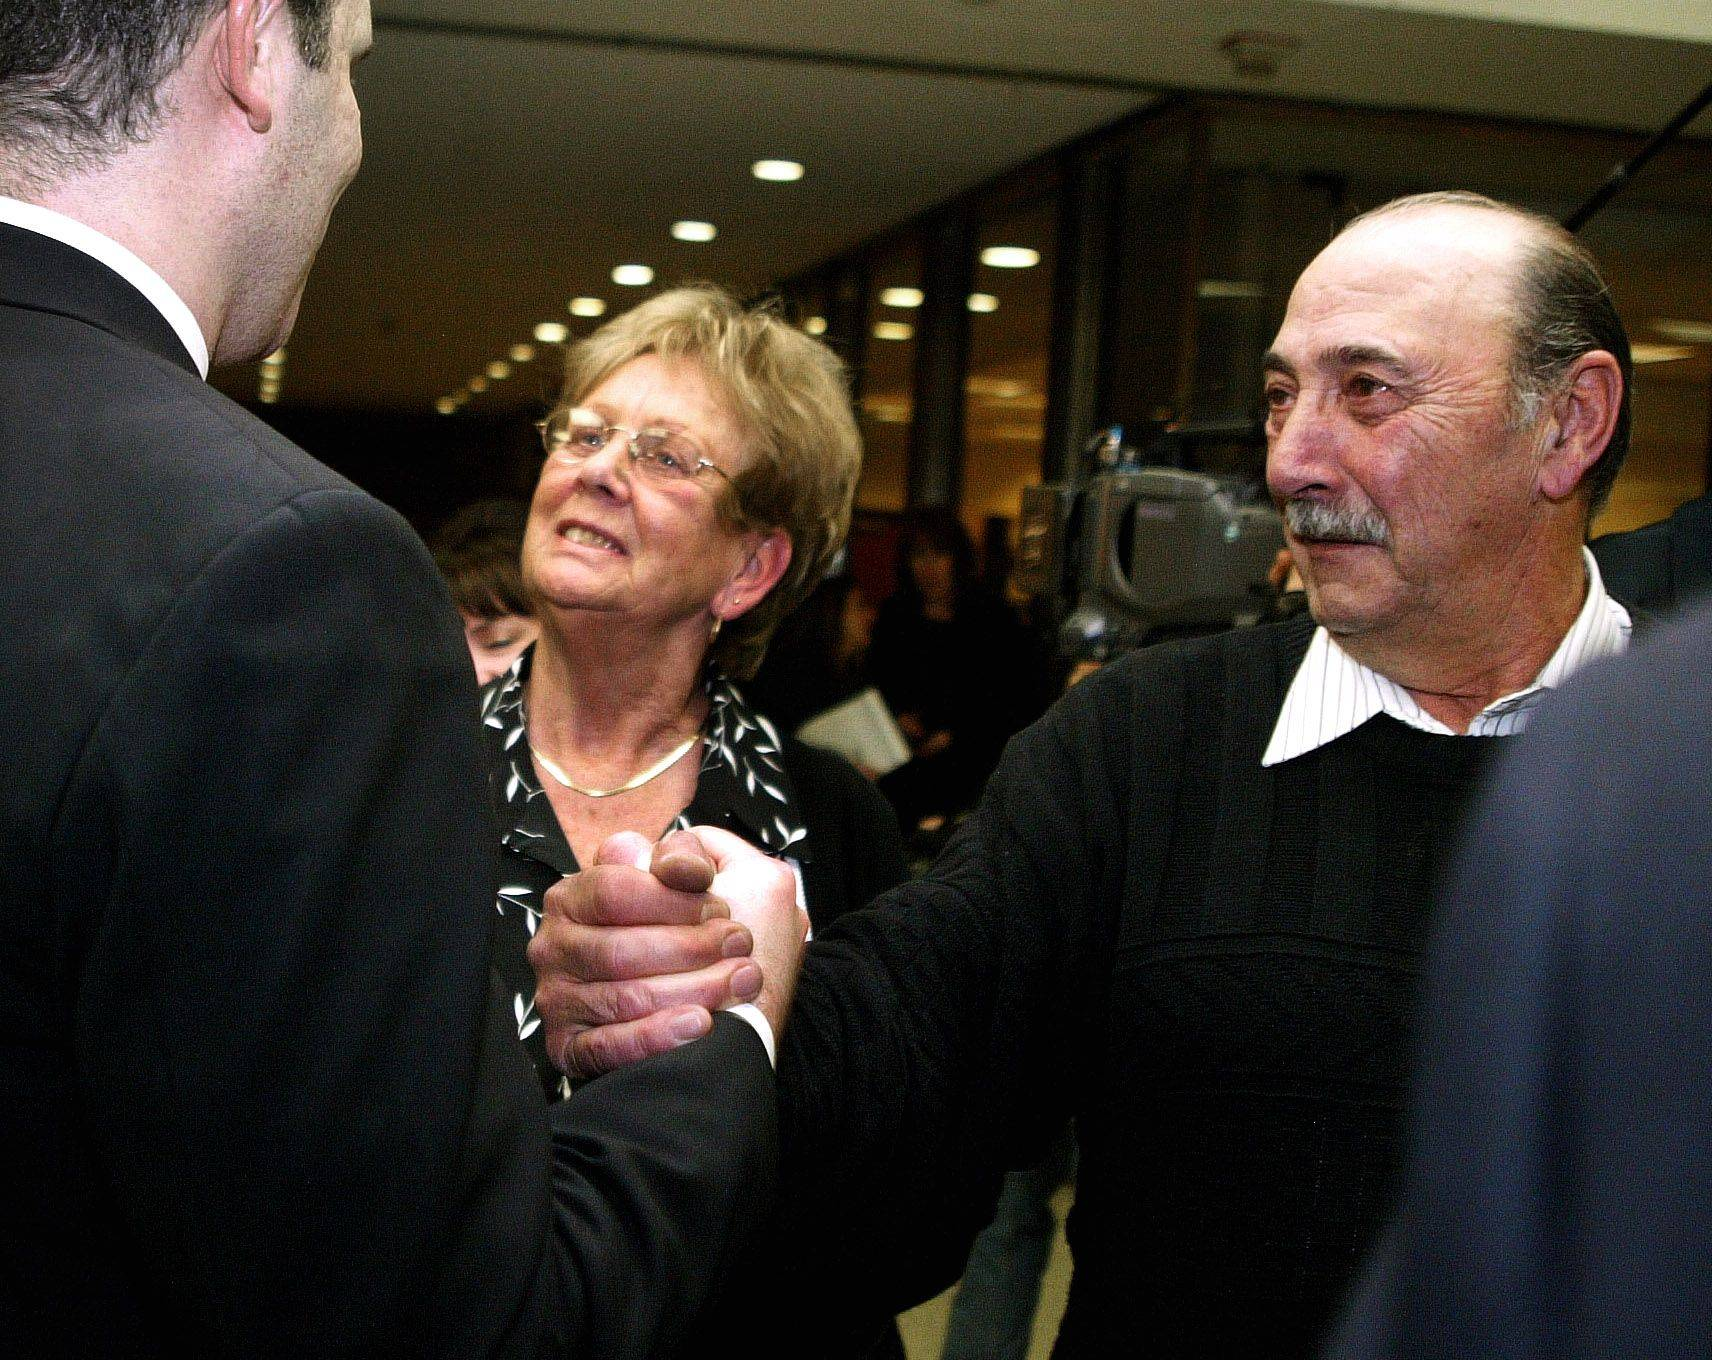 Rhoni Reuter's parents Landa, center, and Doug thank state's attorney Ari Fisz after Marni Yang was found guilty Tuesday in the murder of Rhoni Reuter.